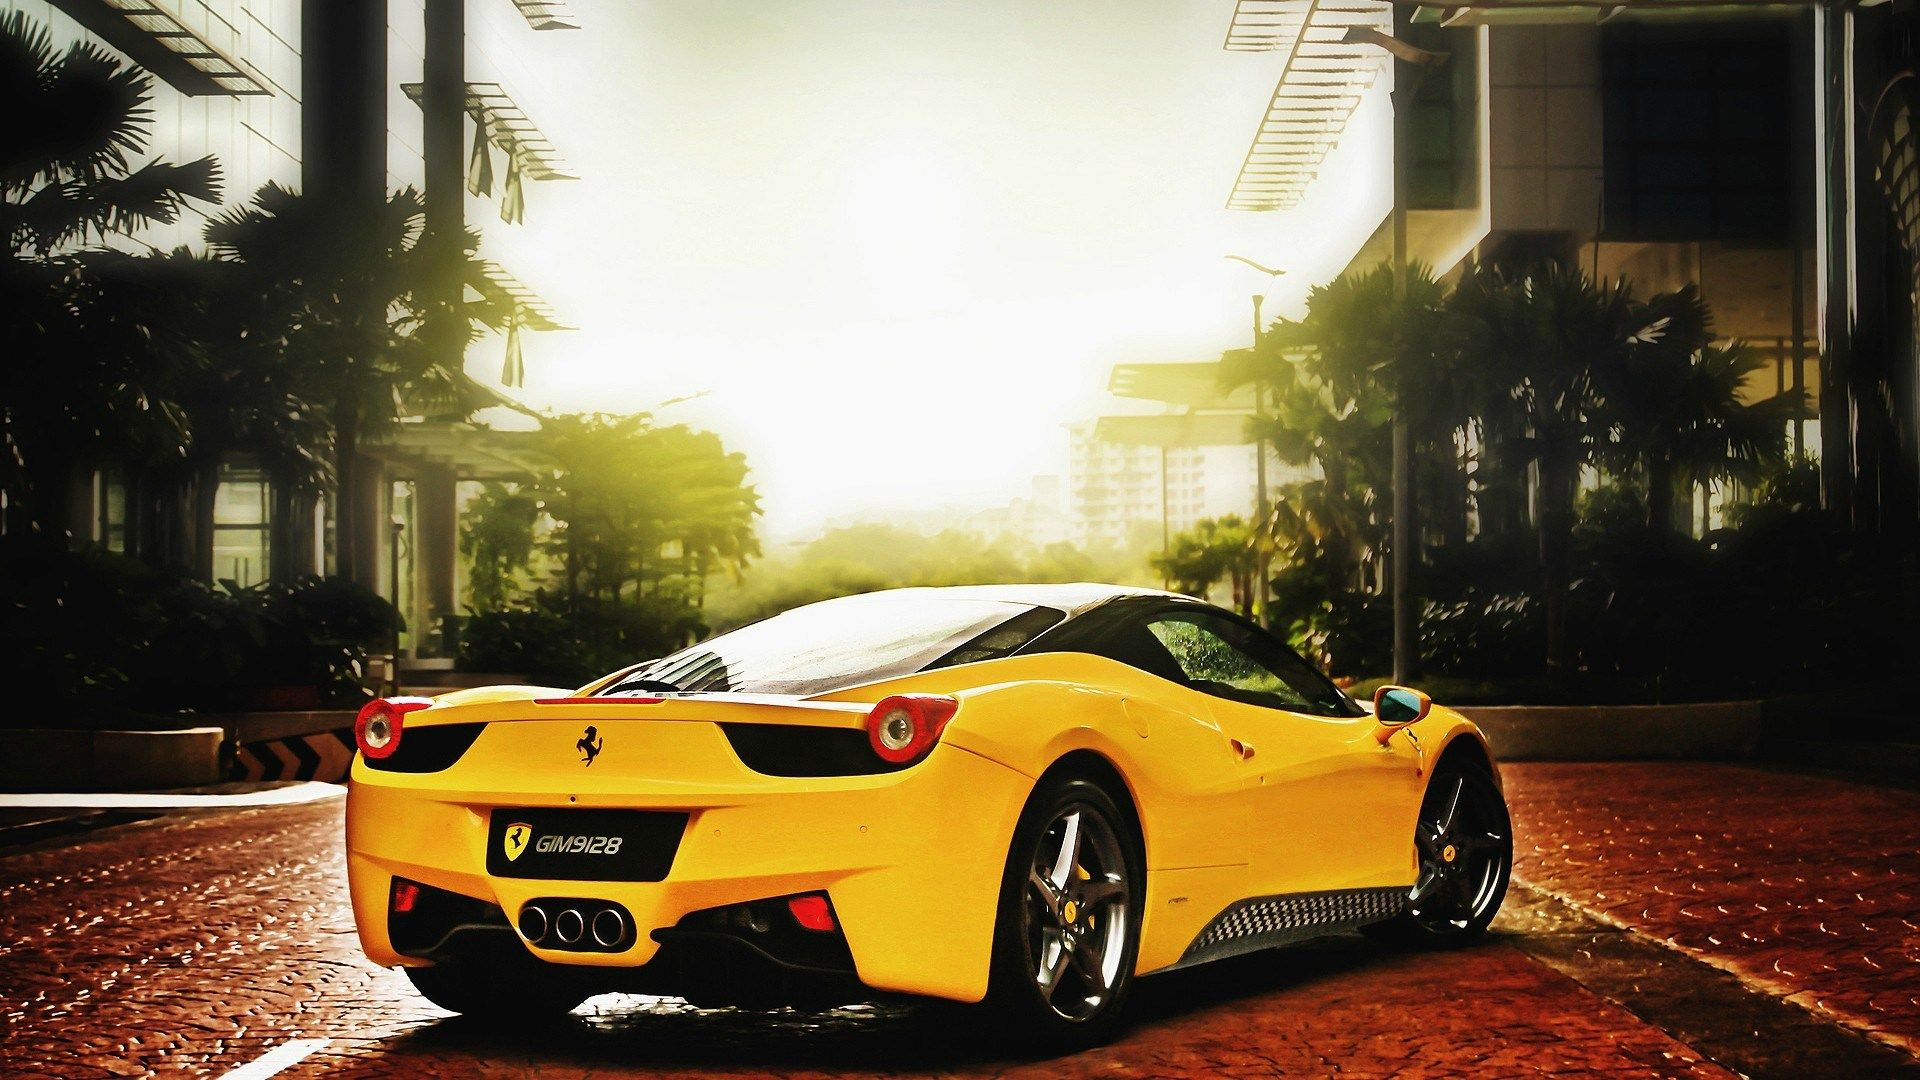 free screensaver wallpapers for ferrari, 1920x1080 (397 kB ...